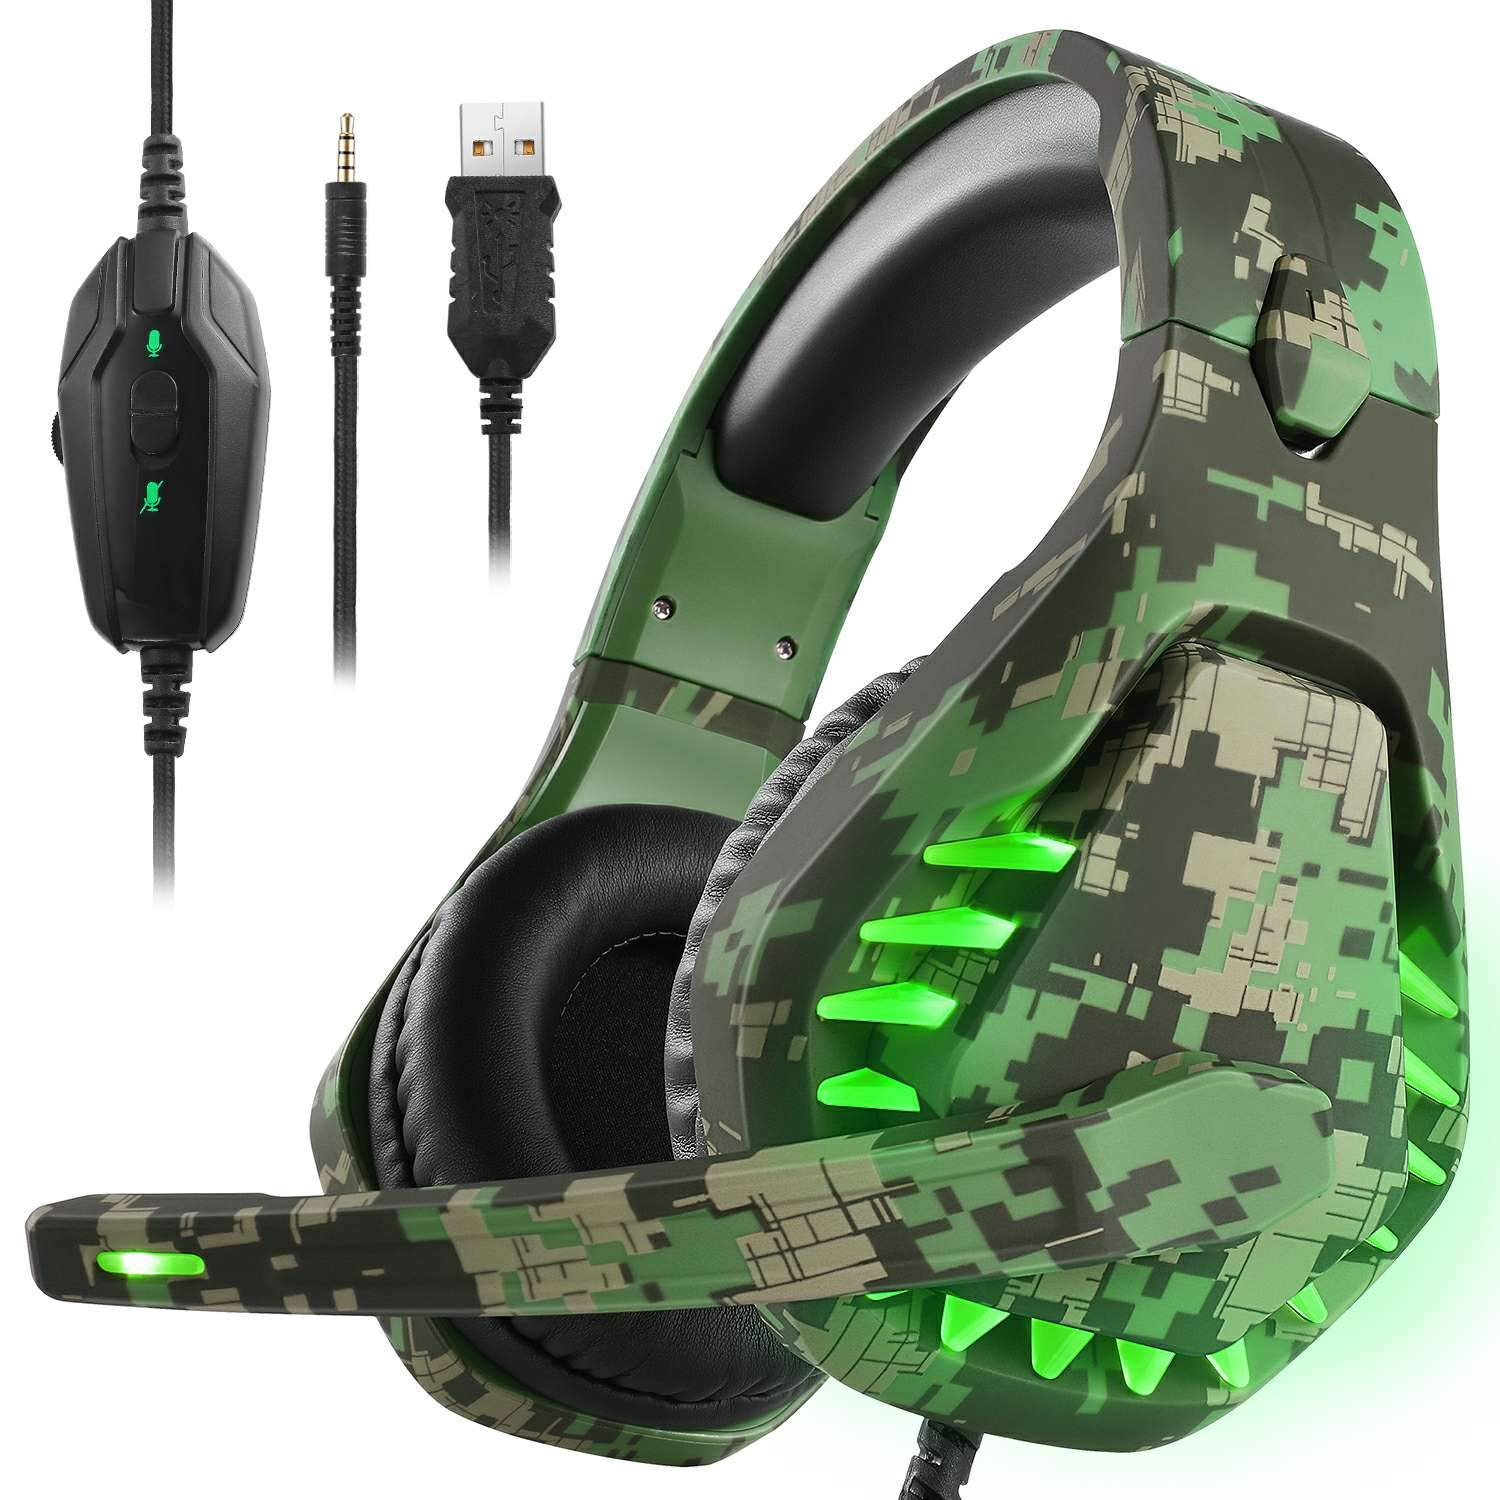 ENVEL Noise Cancelling Gaming Headset with 7.1 Surround Sound Stereo for PS4/Nintendo eShop Switch,Omnidirectional Microphone Vibration LED Light Compatible with Mac/PC/Laptop/Mac/PS3 Camo by ENVEL